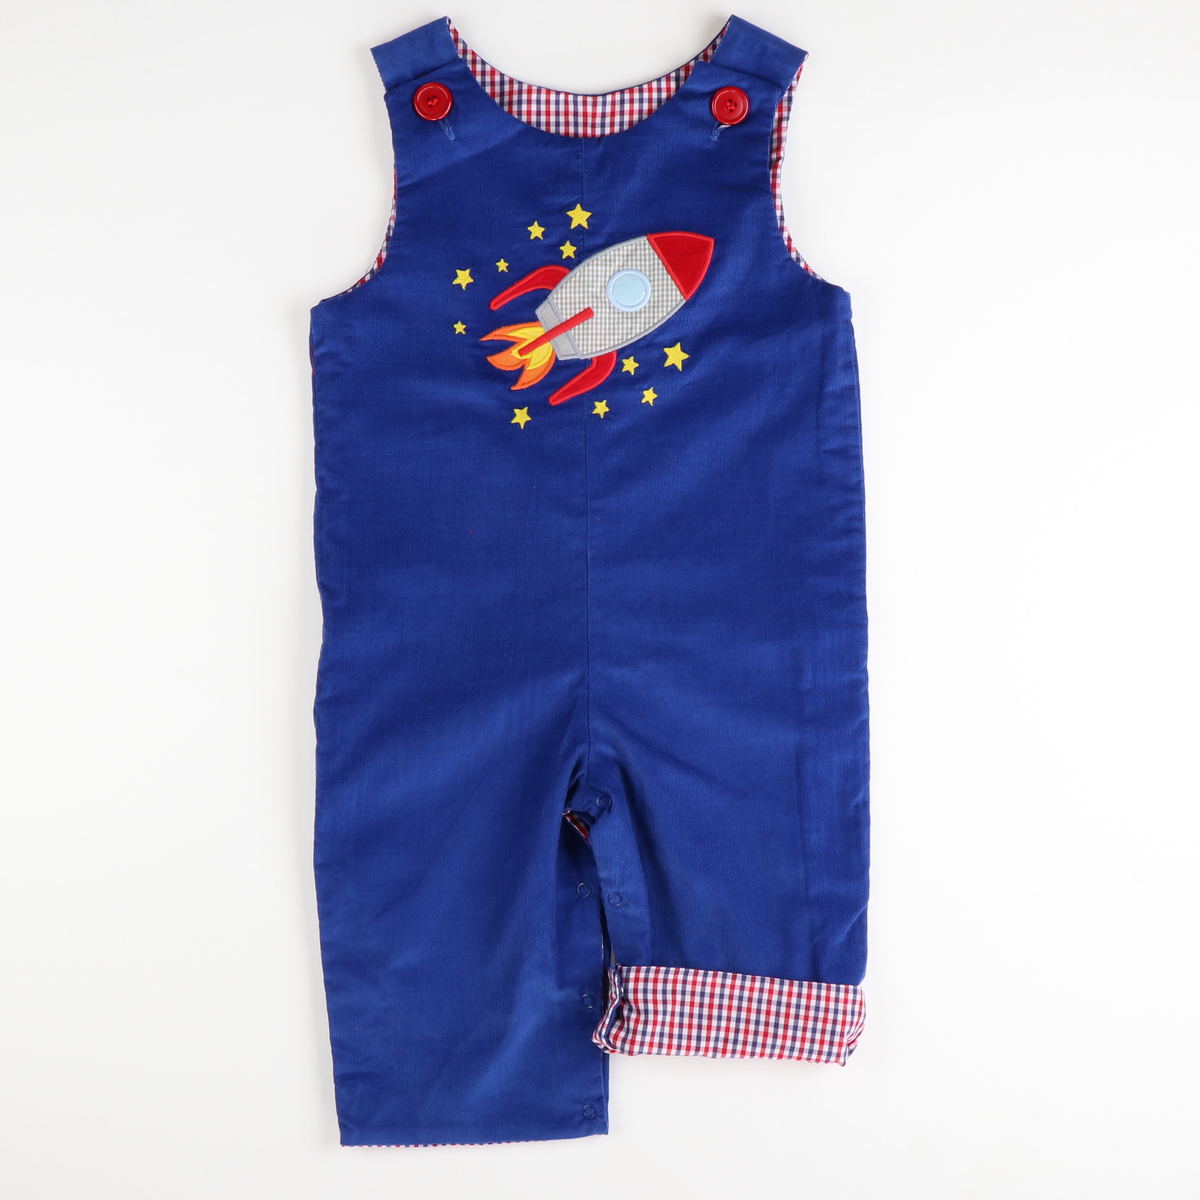 Applique Rocket Boys Overall - Royal Blue Corduroy